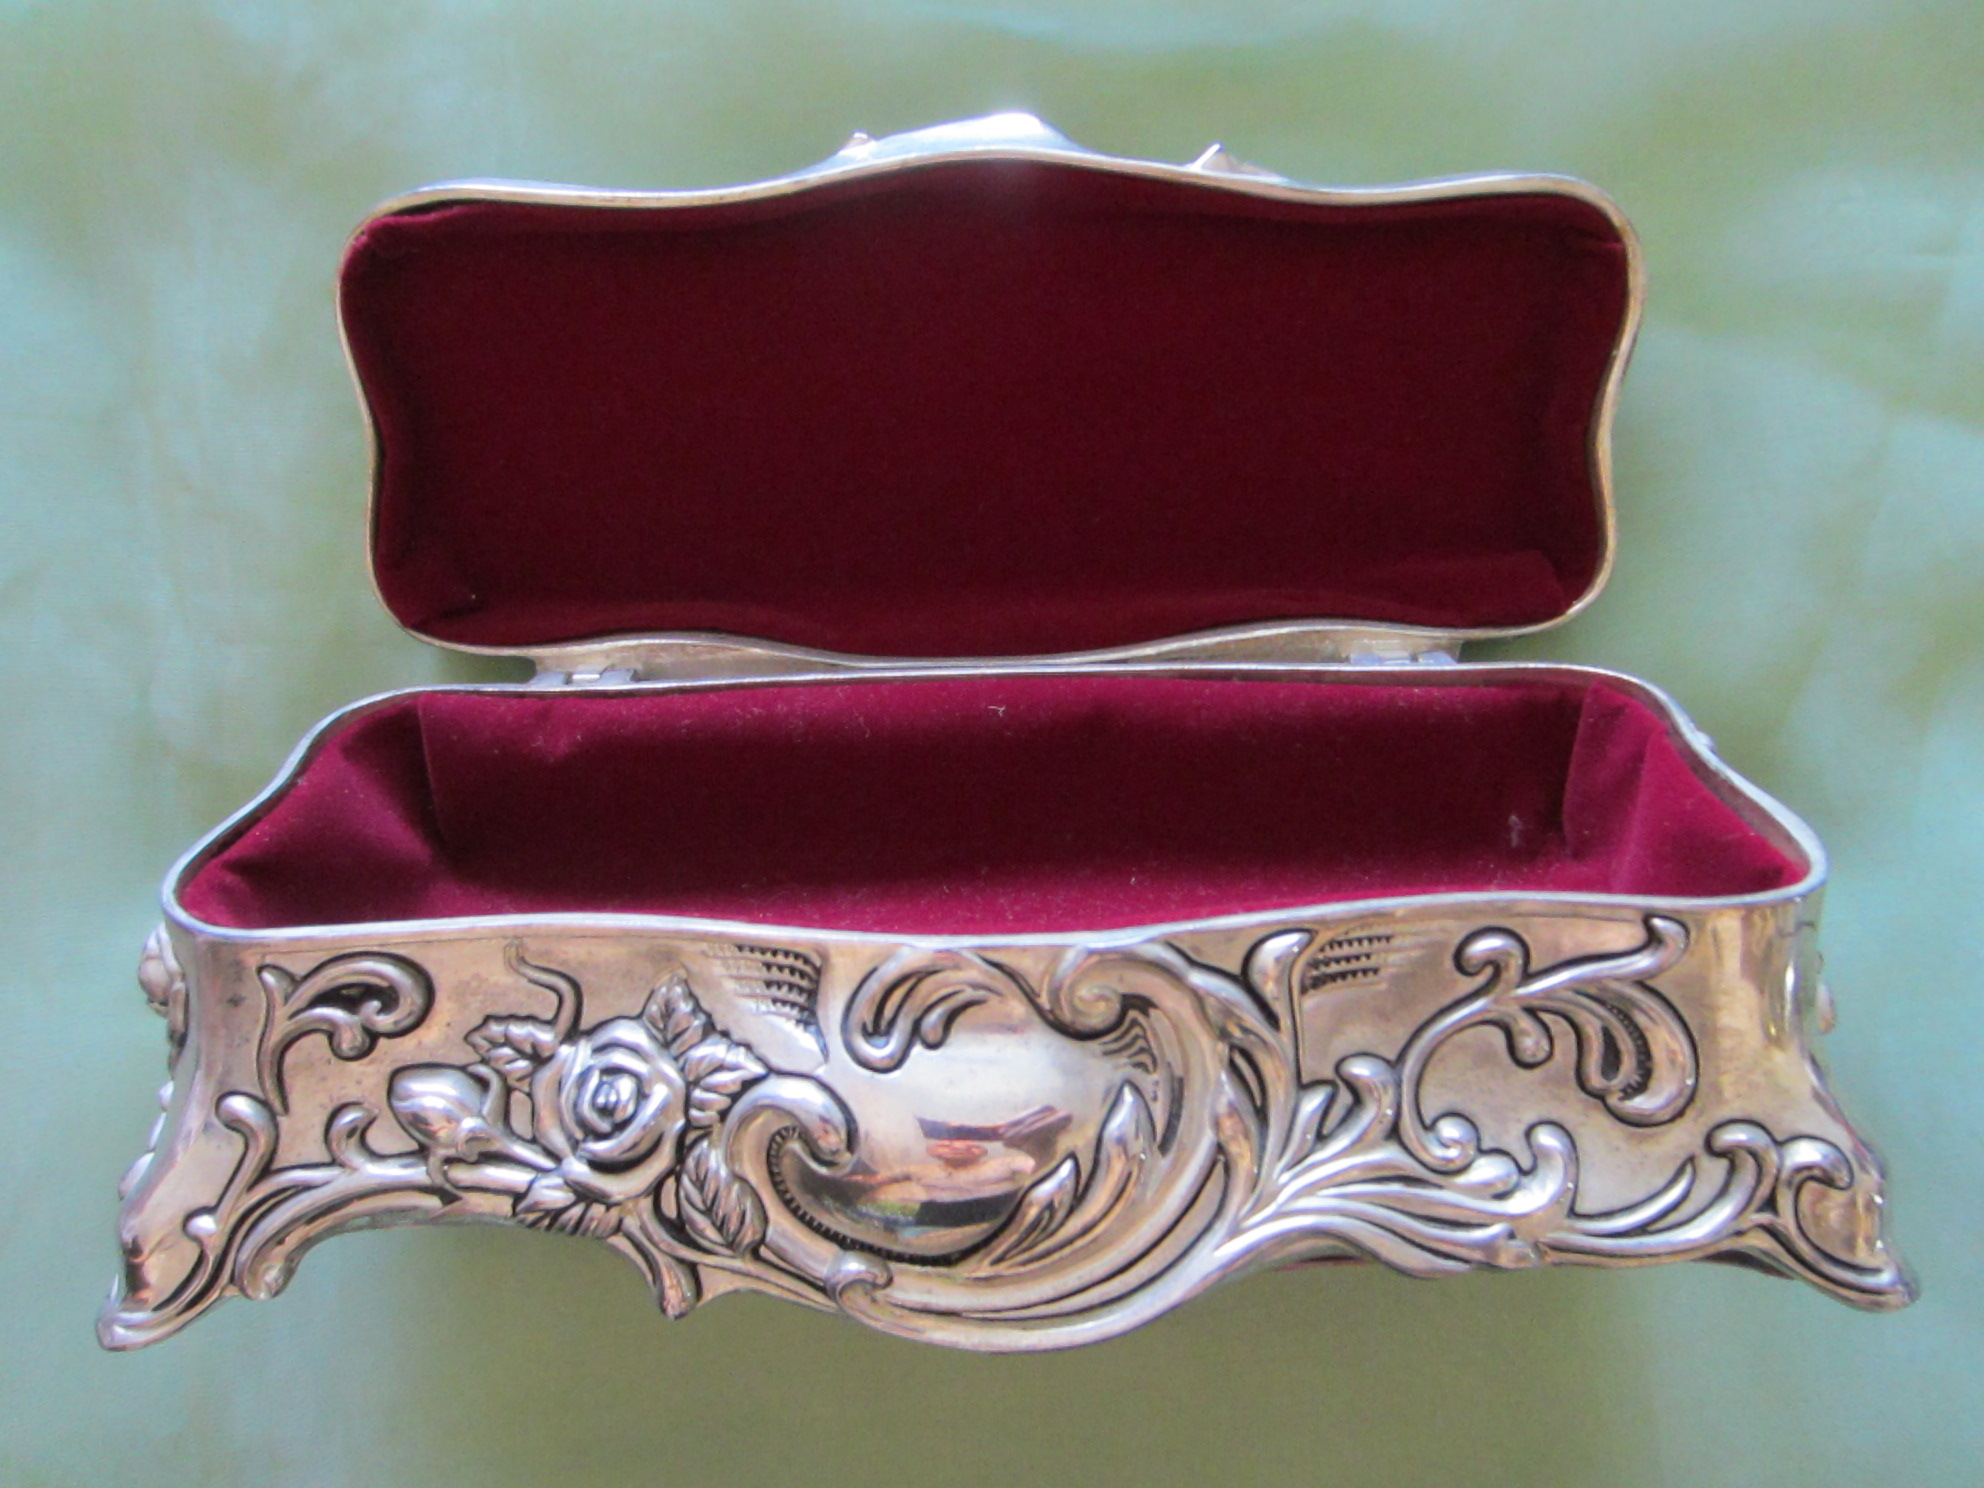 Reply))) )))))))))) Vintage antique metal jewelry boxes